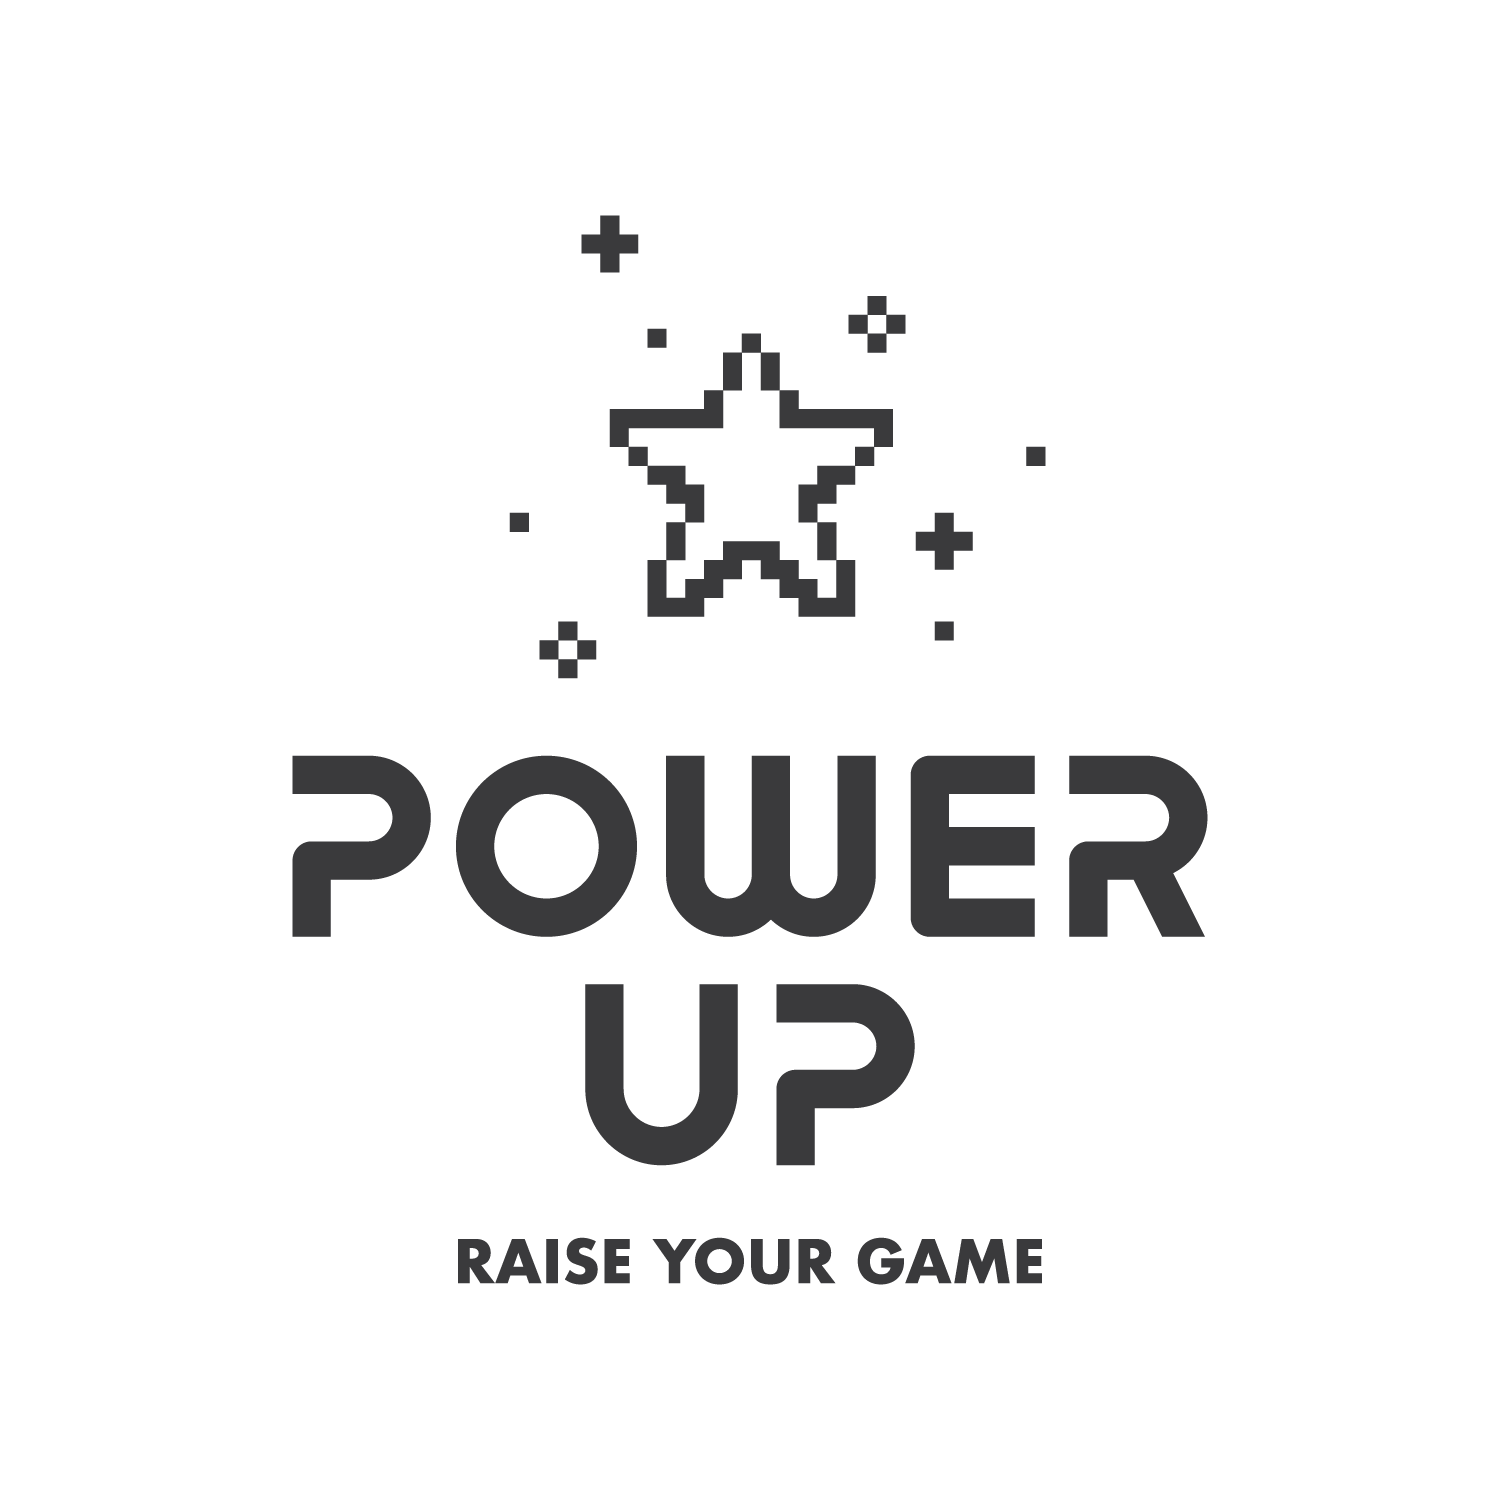 POWERUP_main with tagline.png